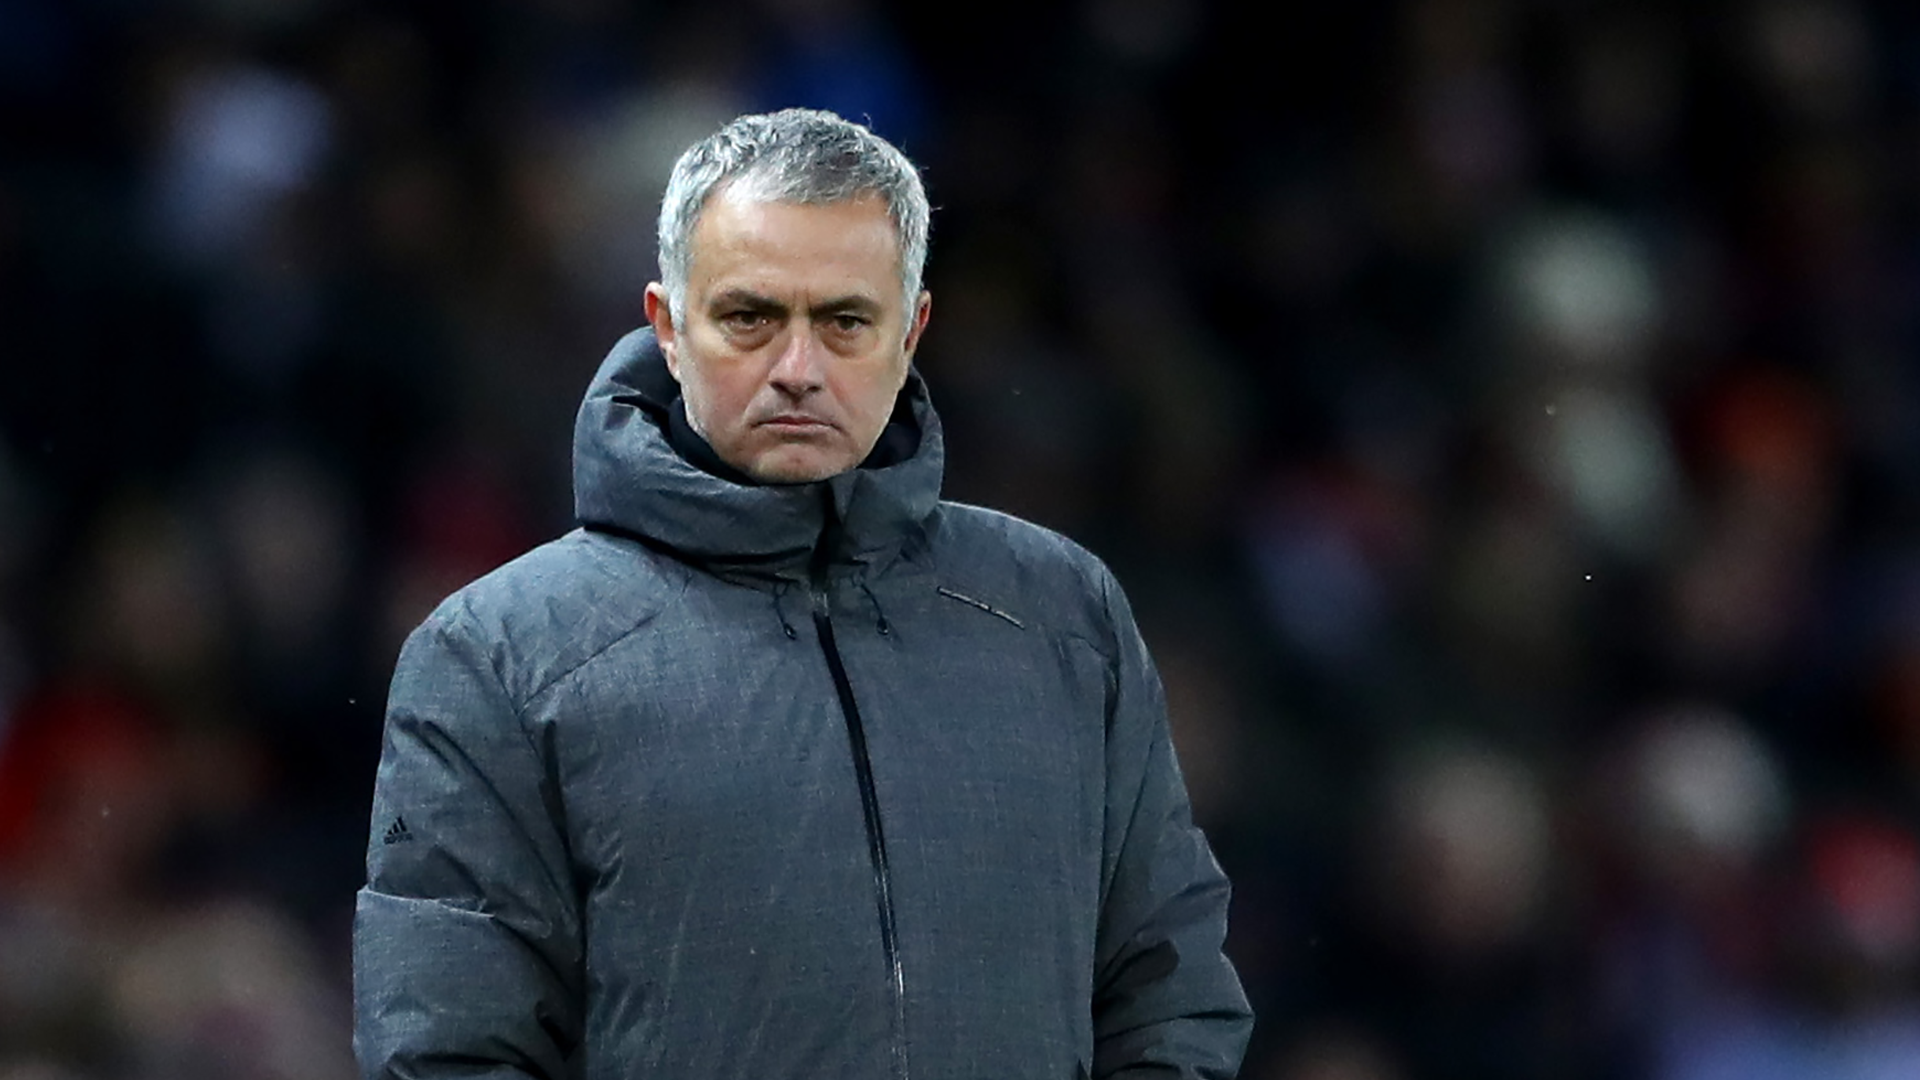 Mourinho accused of 'acting like he was at Carlisle United, not Manchester United'